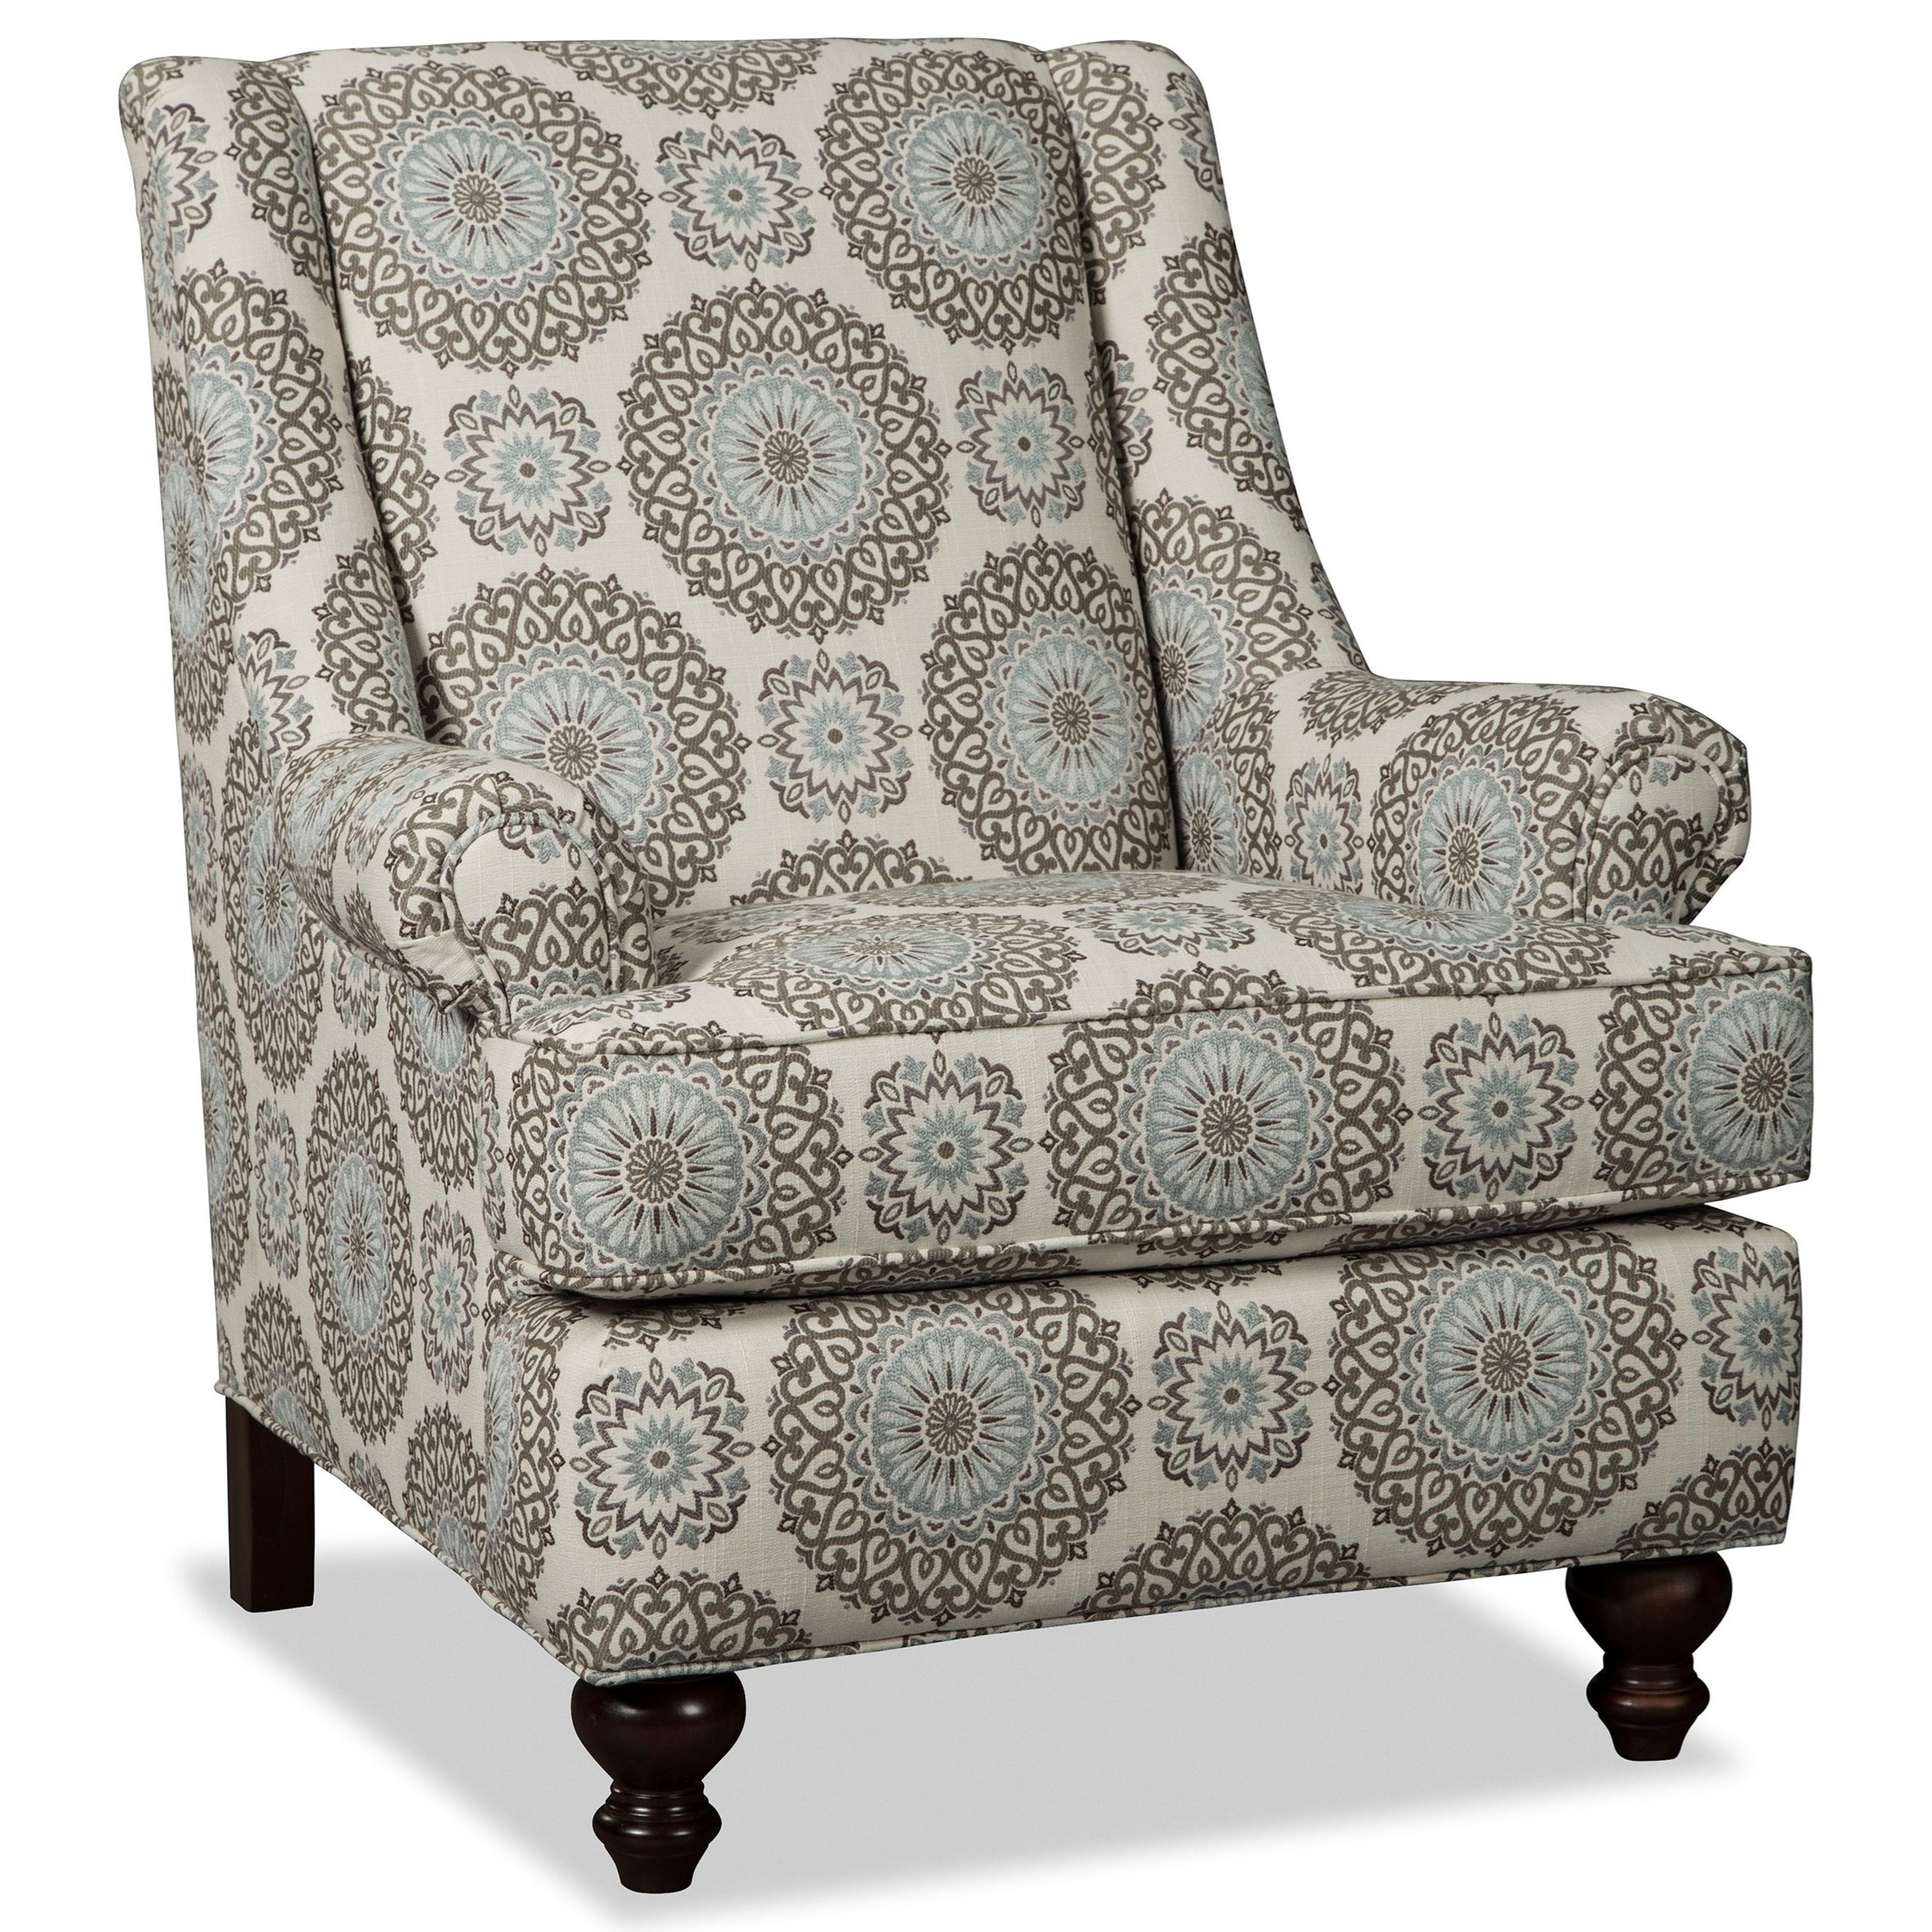 Craftmaster Accent ChairsChair  sc 1 st  VanDrie Home Furnishings & Craftmaster Accent Chairs Traditional Chair with Rolled Panel Arms ...